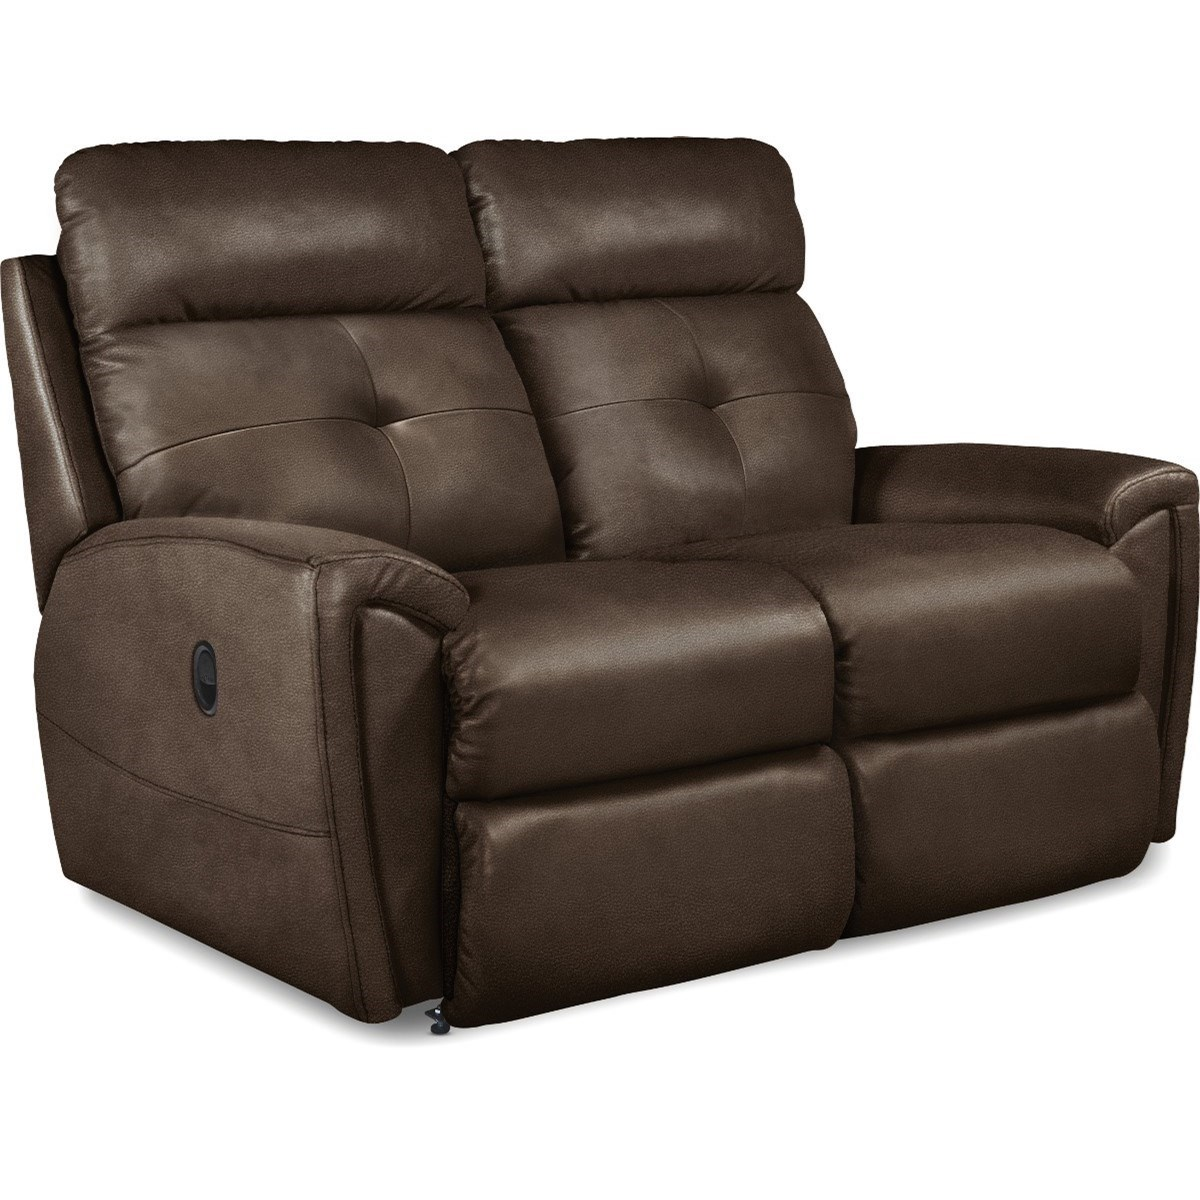 Douglas Reclining Loveseat by La-Z-Boy at Bennett's Furniture and Mattresses